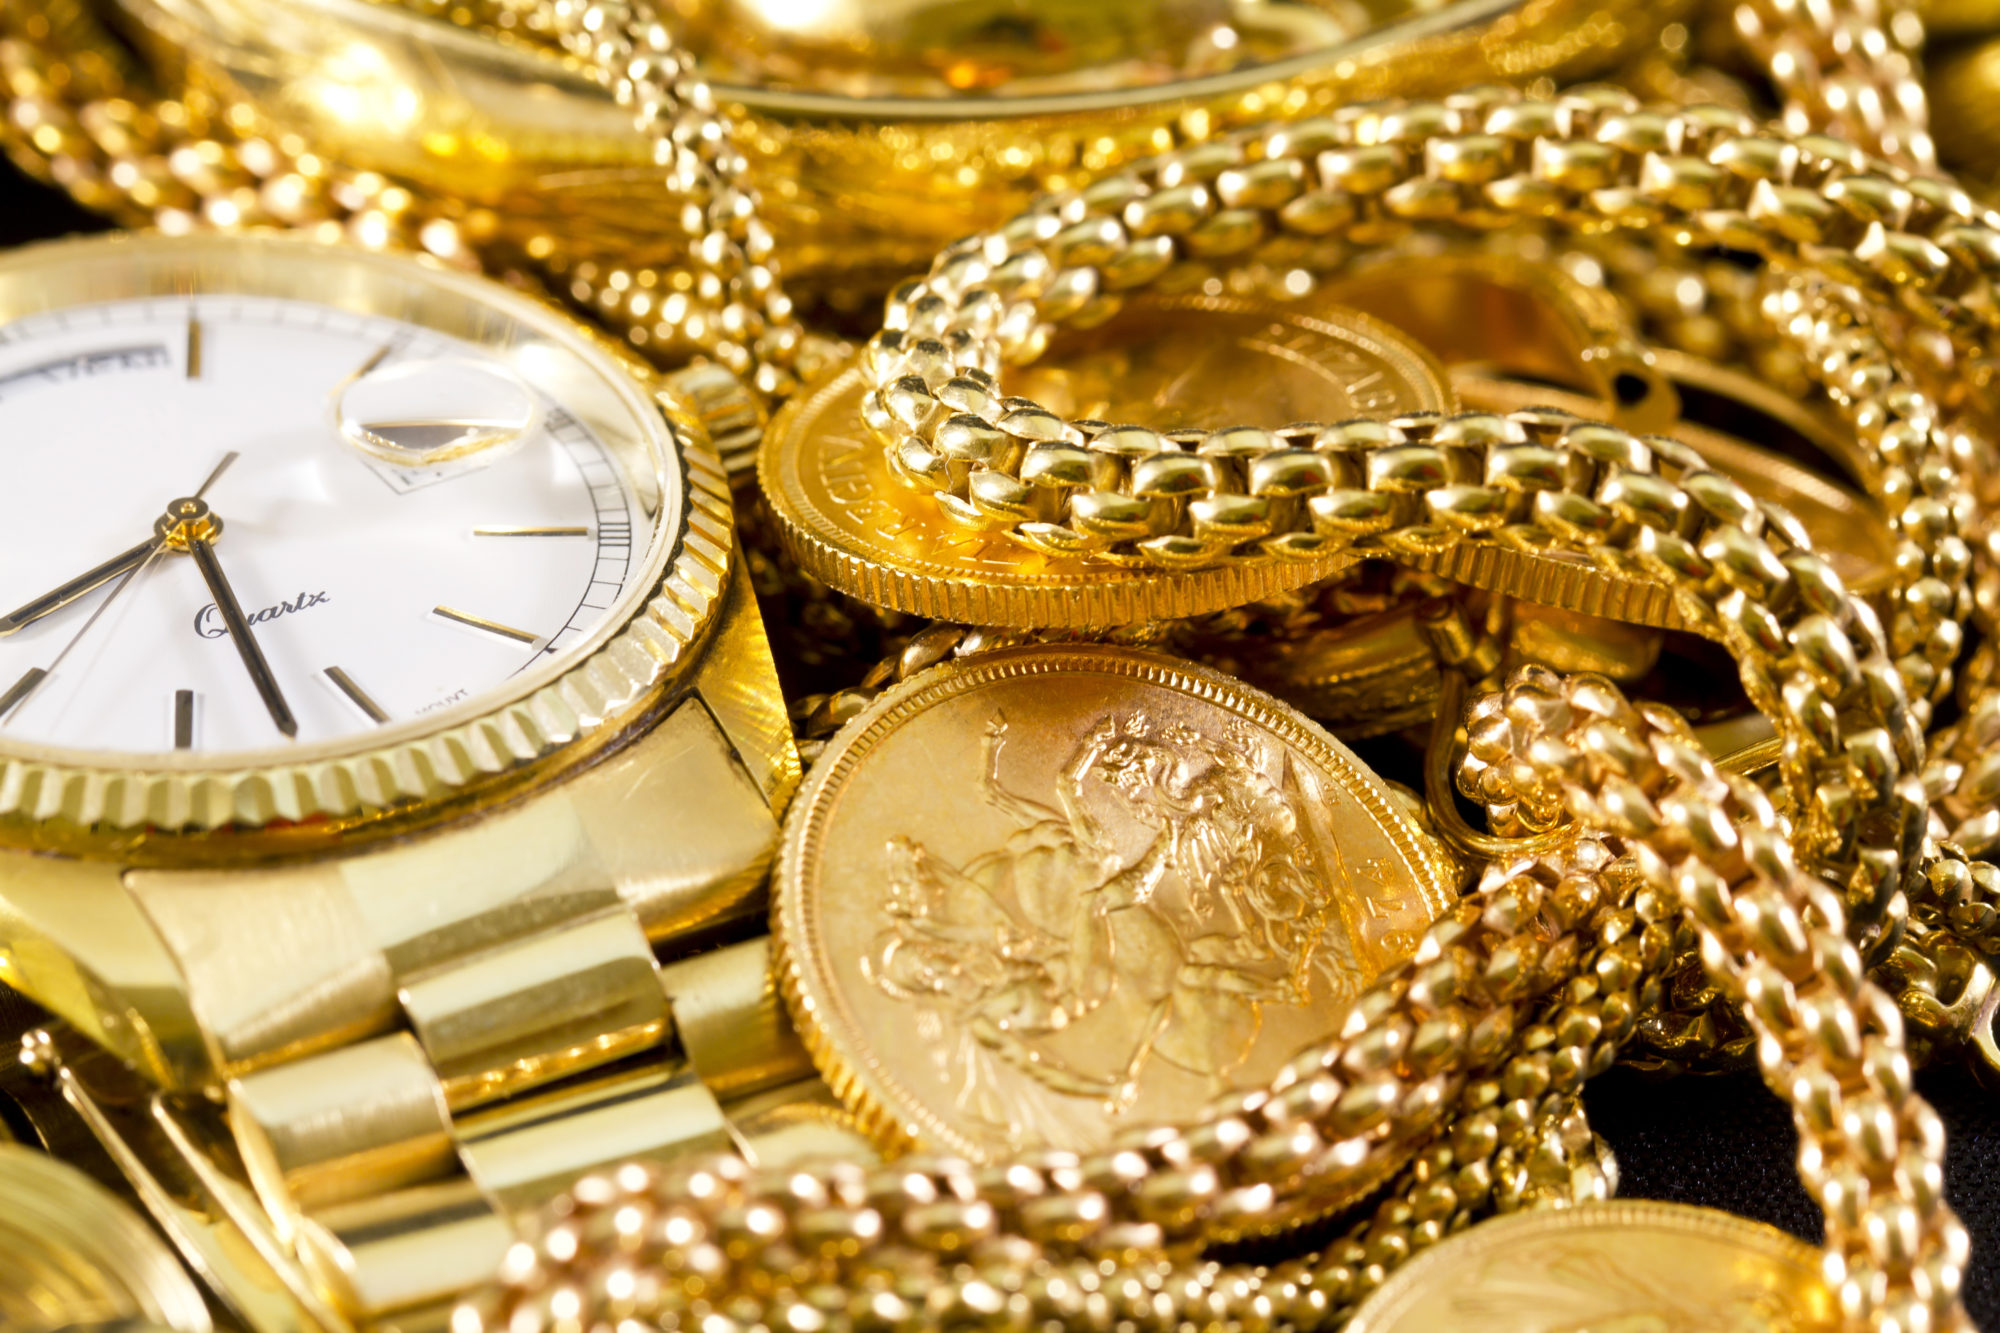 Gold jewelry | What Makes Gold Valuable? | Nationwide Coin & Bullion Reserve